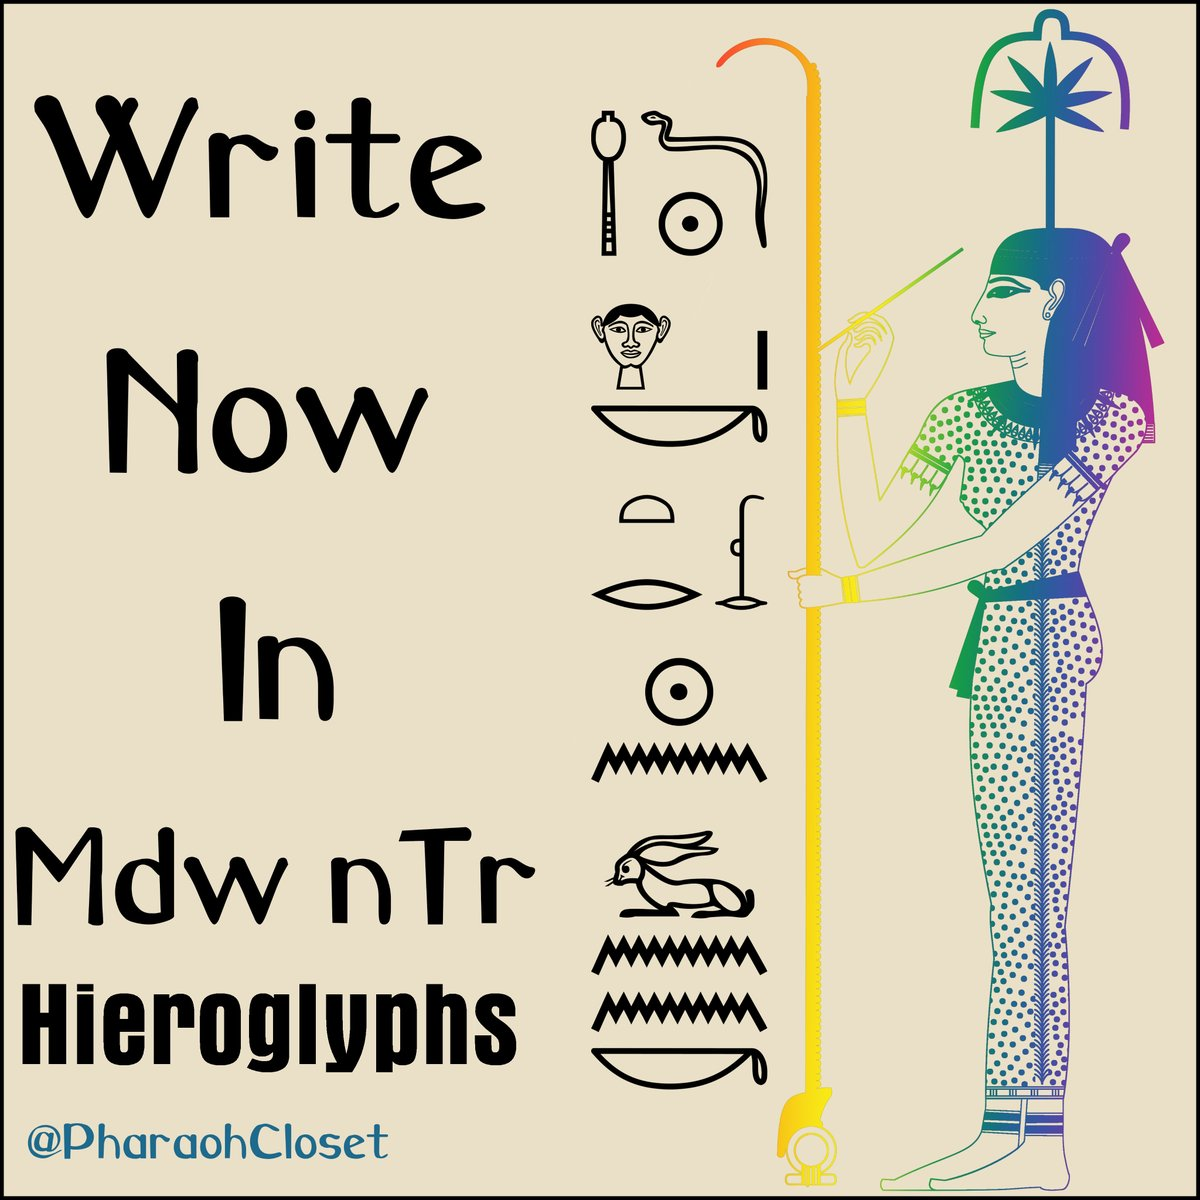 If you wanna write anything in Ancient #Egyptian #Hieroglyphs CORRECTLY, just place an order in the link!  ♥   #FreeStuffFriday #USAvCOL #USWNT #RadicalLeftistAgenda #Kemetism #Kimetism #Kemetic #ancientegypt @BlazedRTs #Hieroglyphic #meduneter #Egyptology